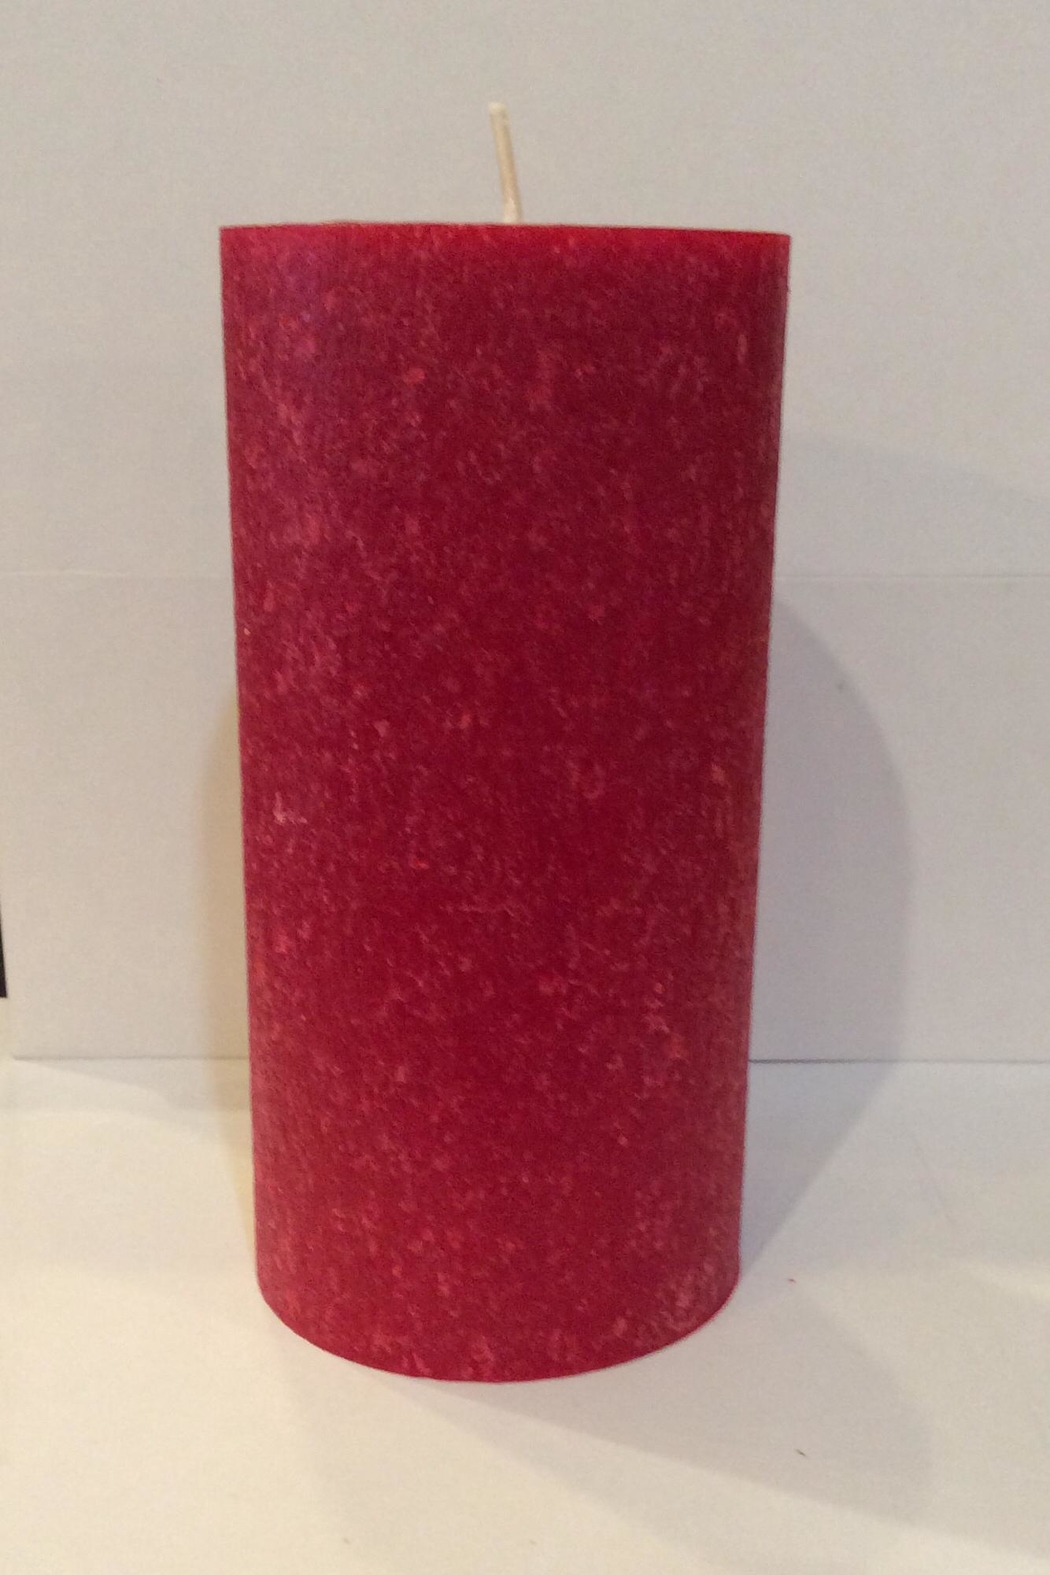 A.I. Root Candle Co. Hollyberry 3x9 - Main Image